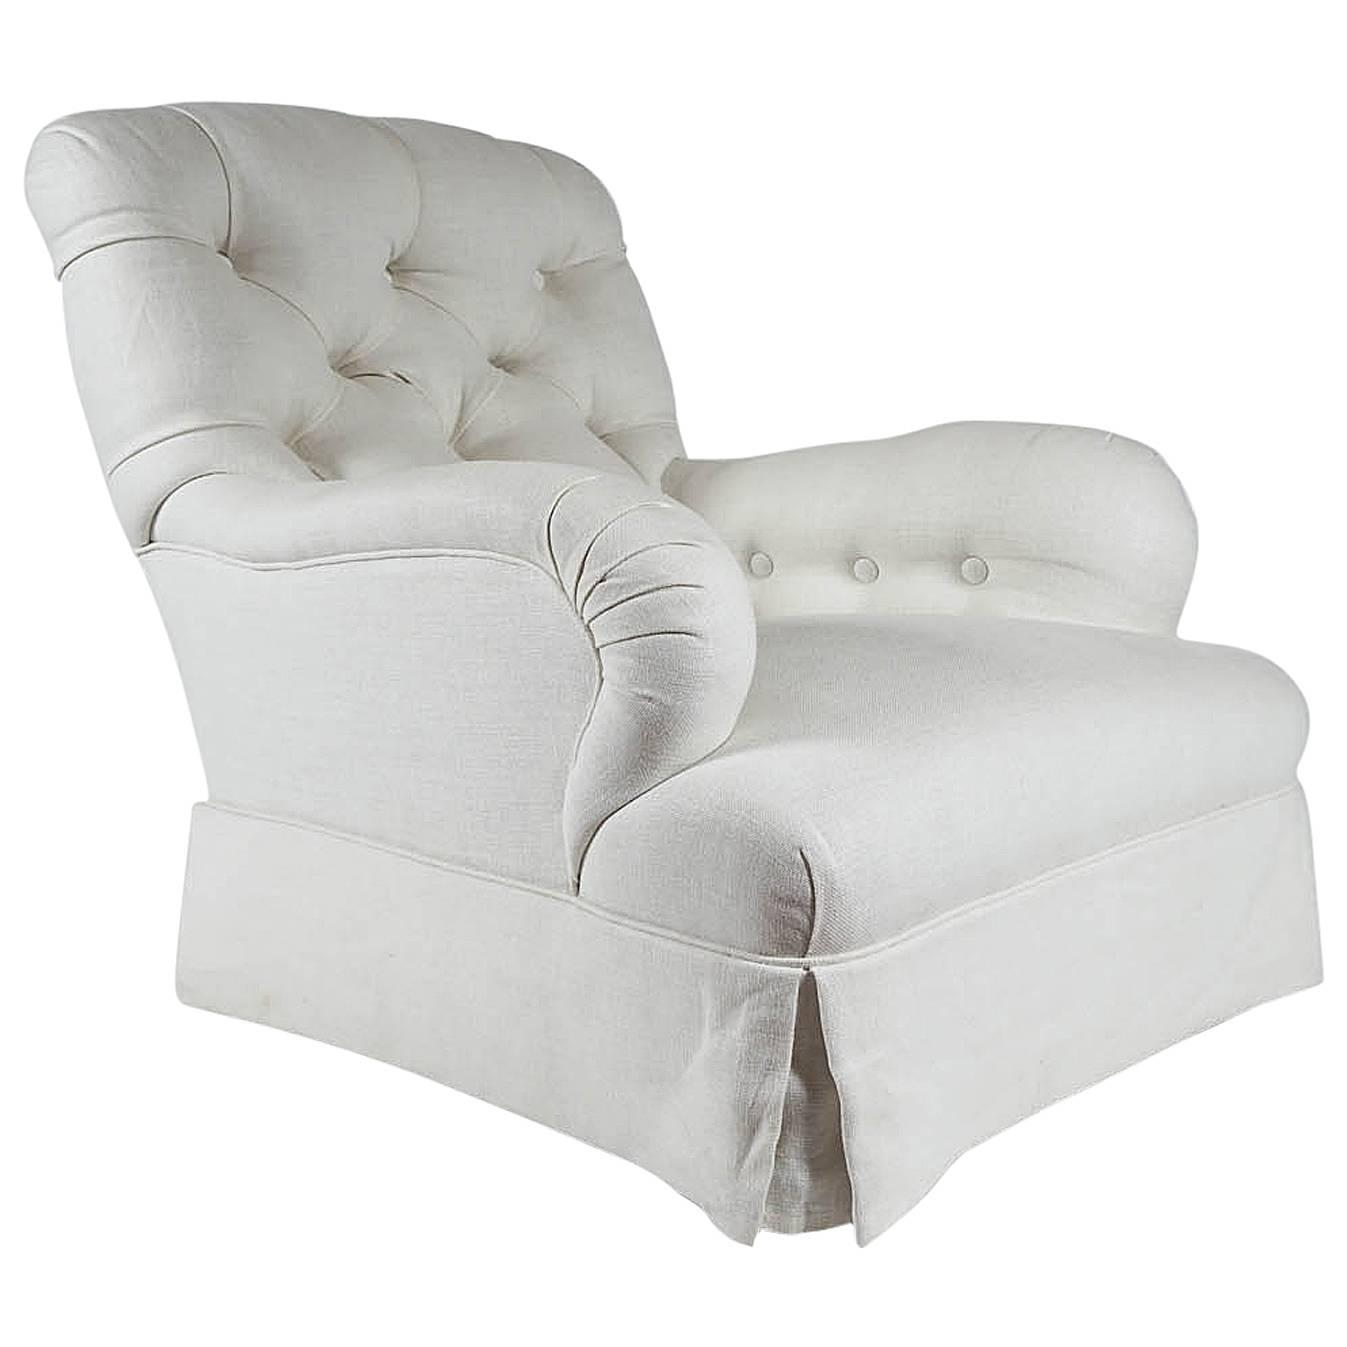 Most fortable Lounge Chair